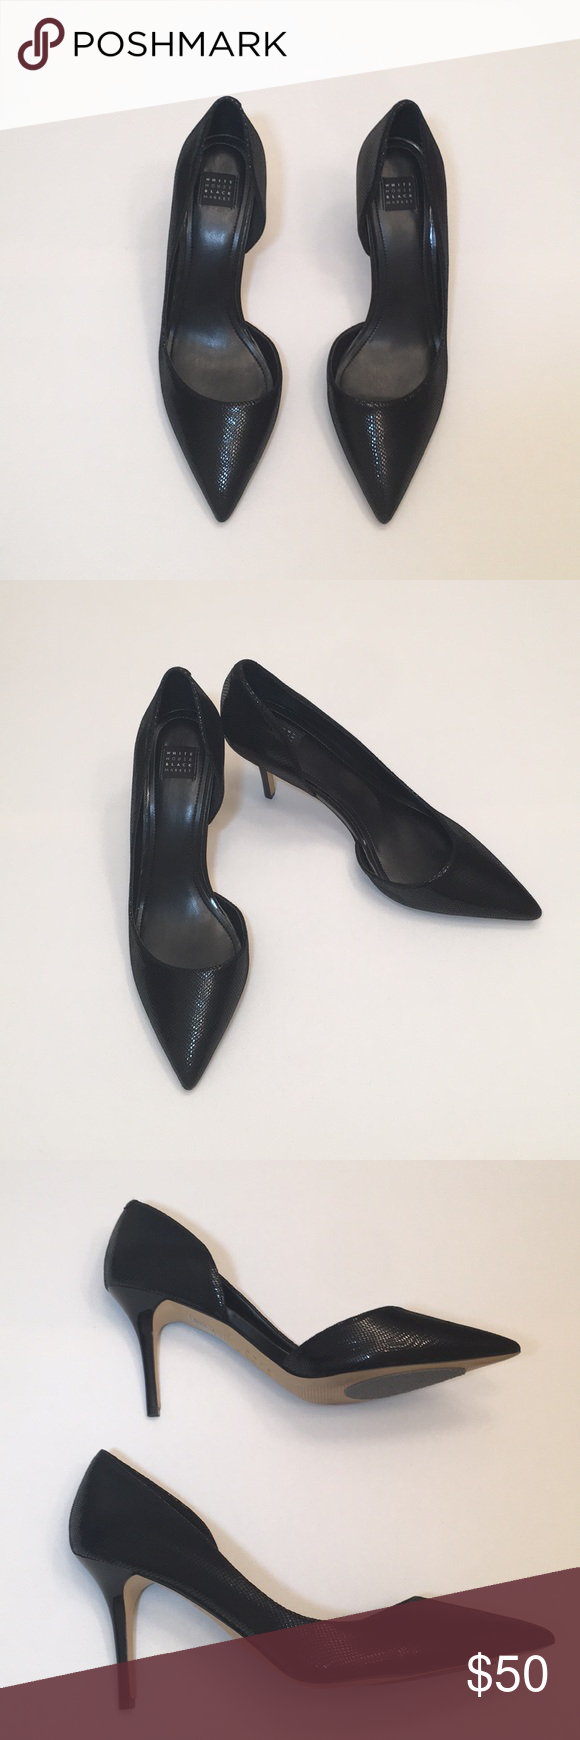 551ca08e1a D'Orsay pumps by White House Black Market Lizard embossed black leather  D'Orsay